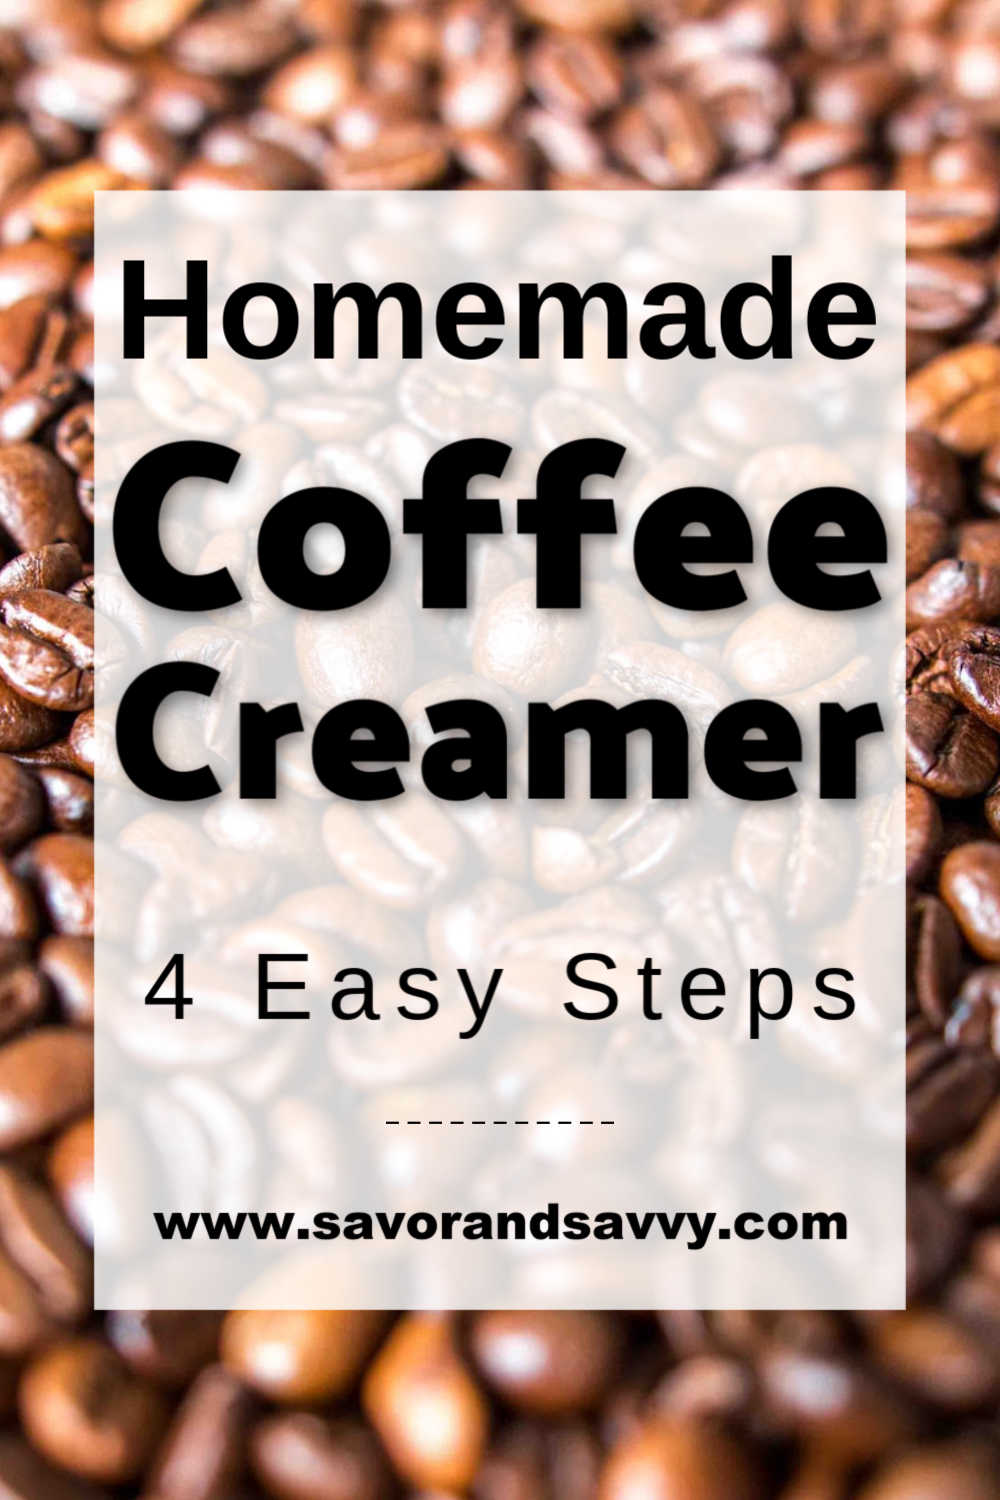 Learn the four easy steps to make your own homemade coffee creamer! With just a couple of ingredients, this easy recipe will have you customizing your own creamer. What flavors will you make? #coffee #CoffeeCreamer #Homemade #DIY